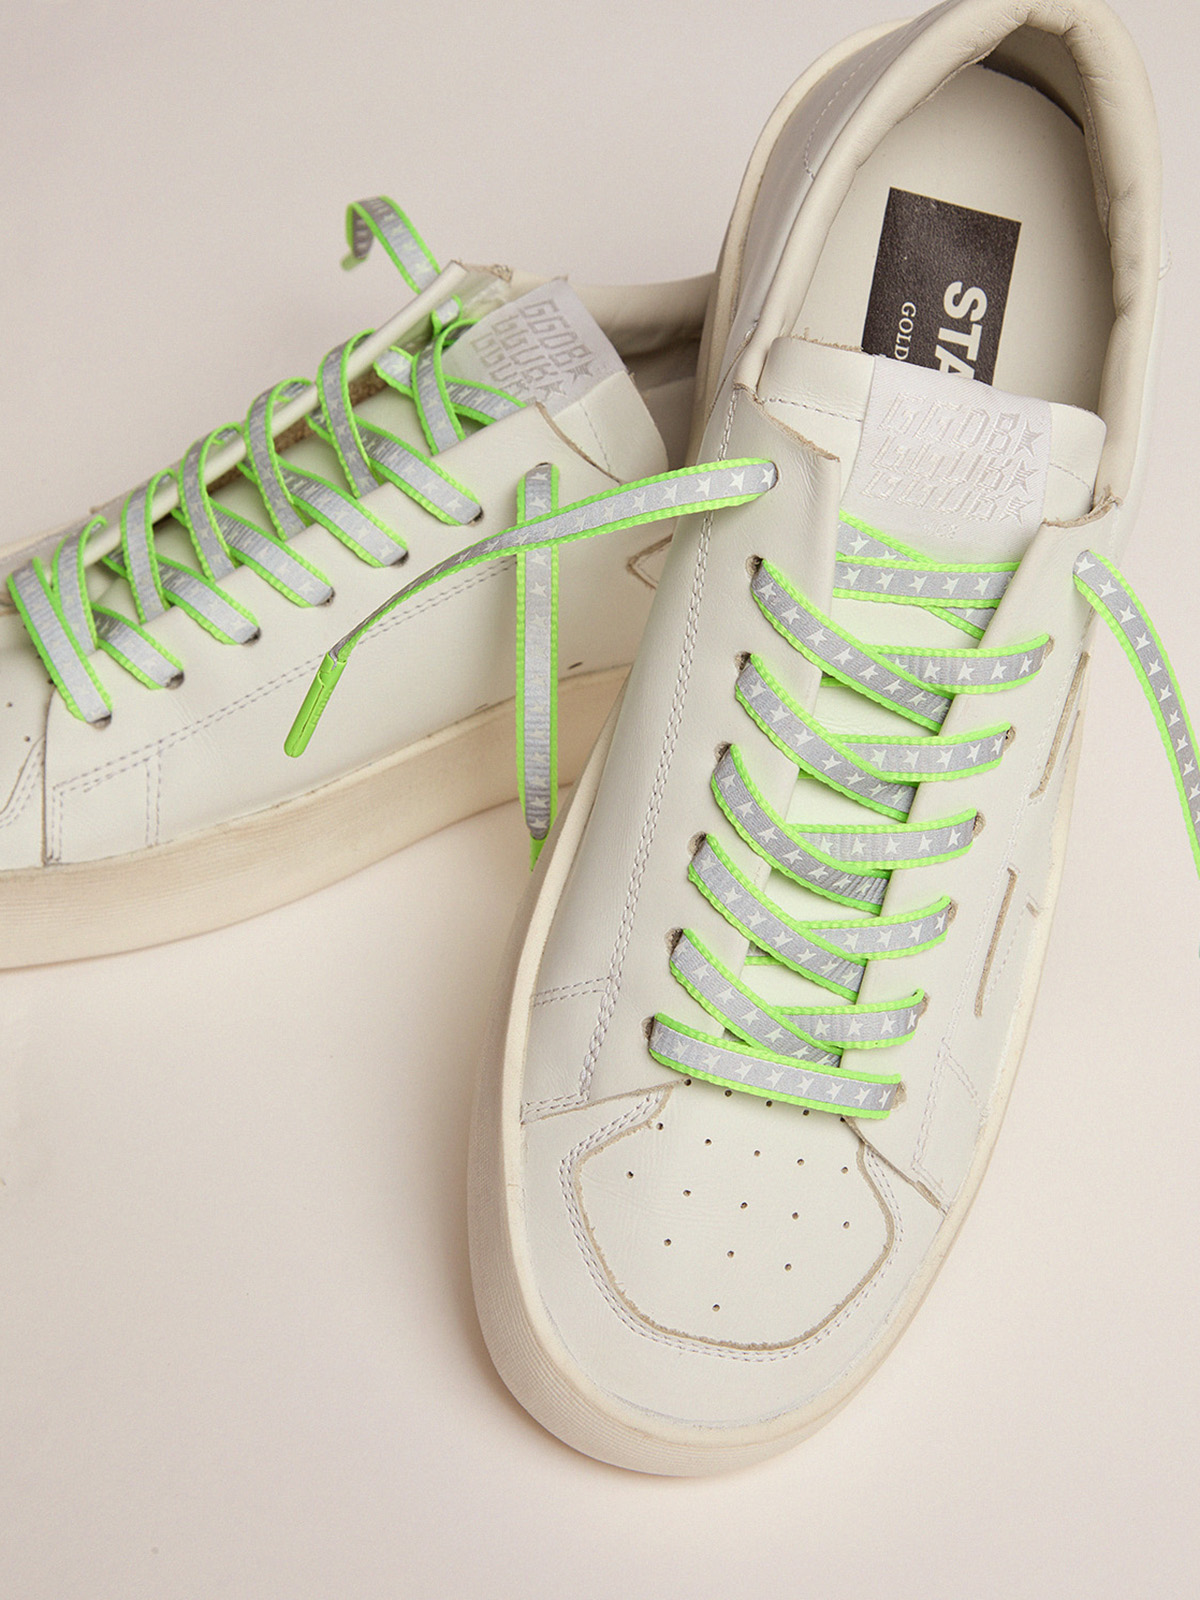 Golden Goose - Women's neon green reflective laces with stars in